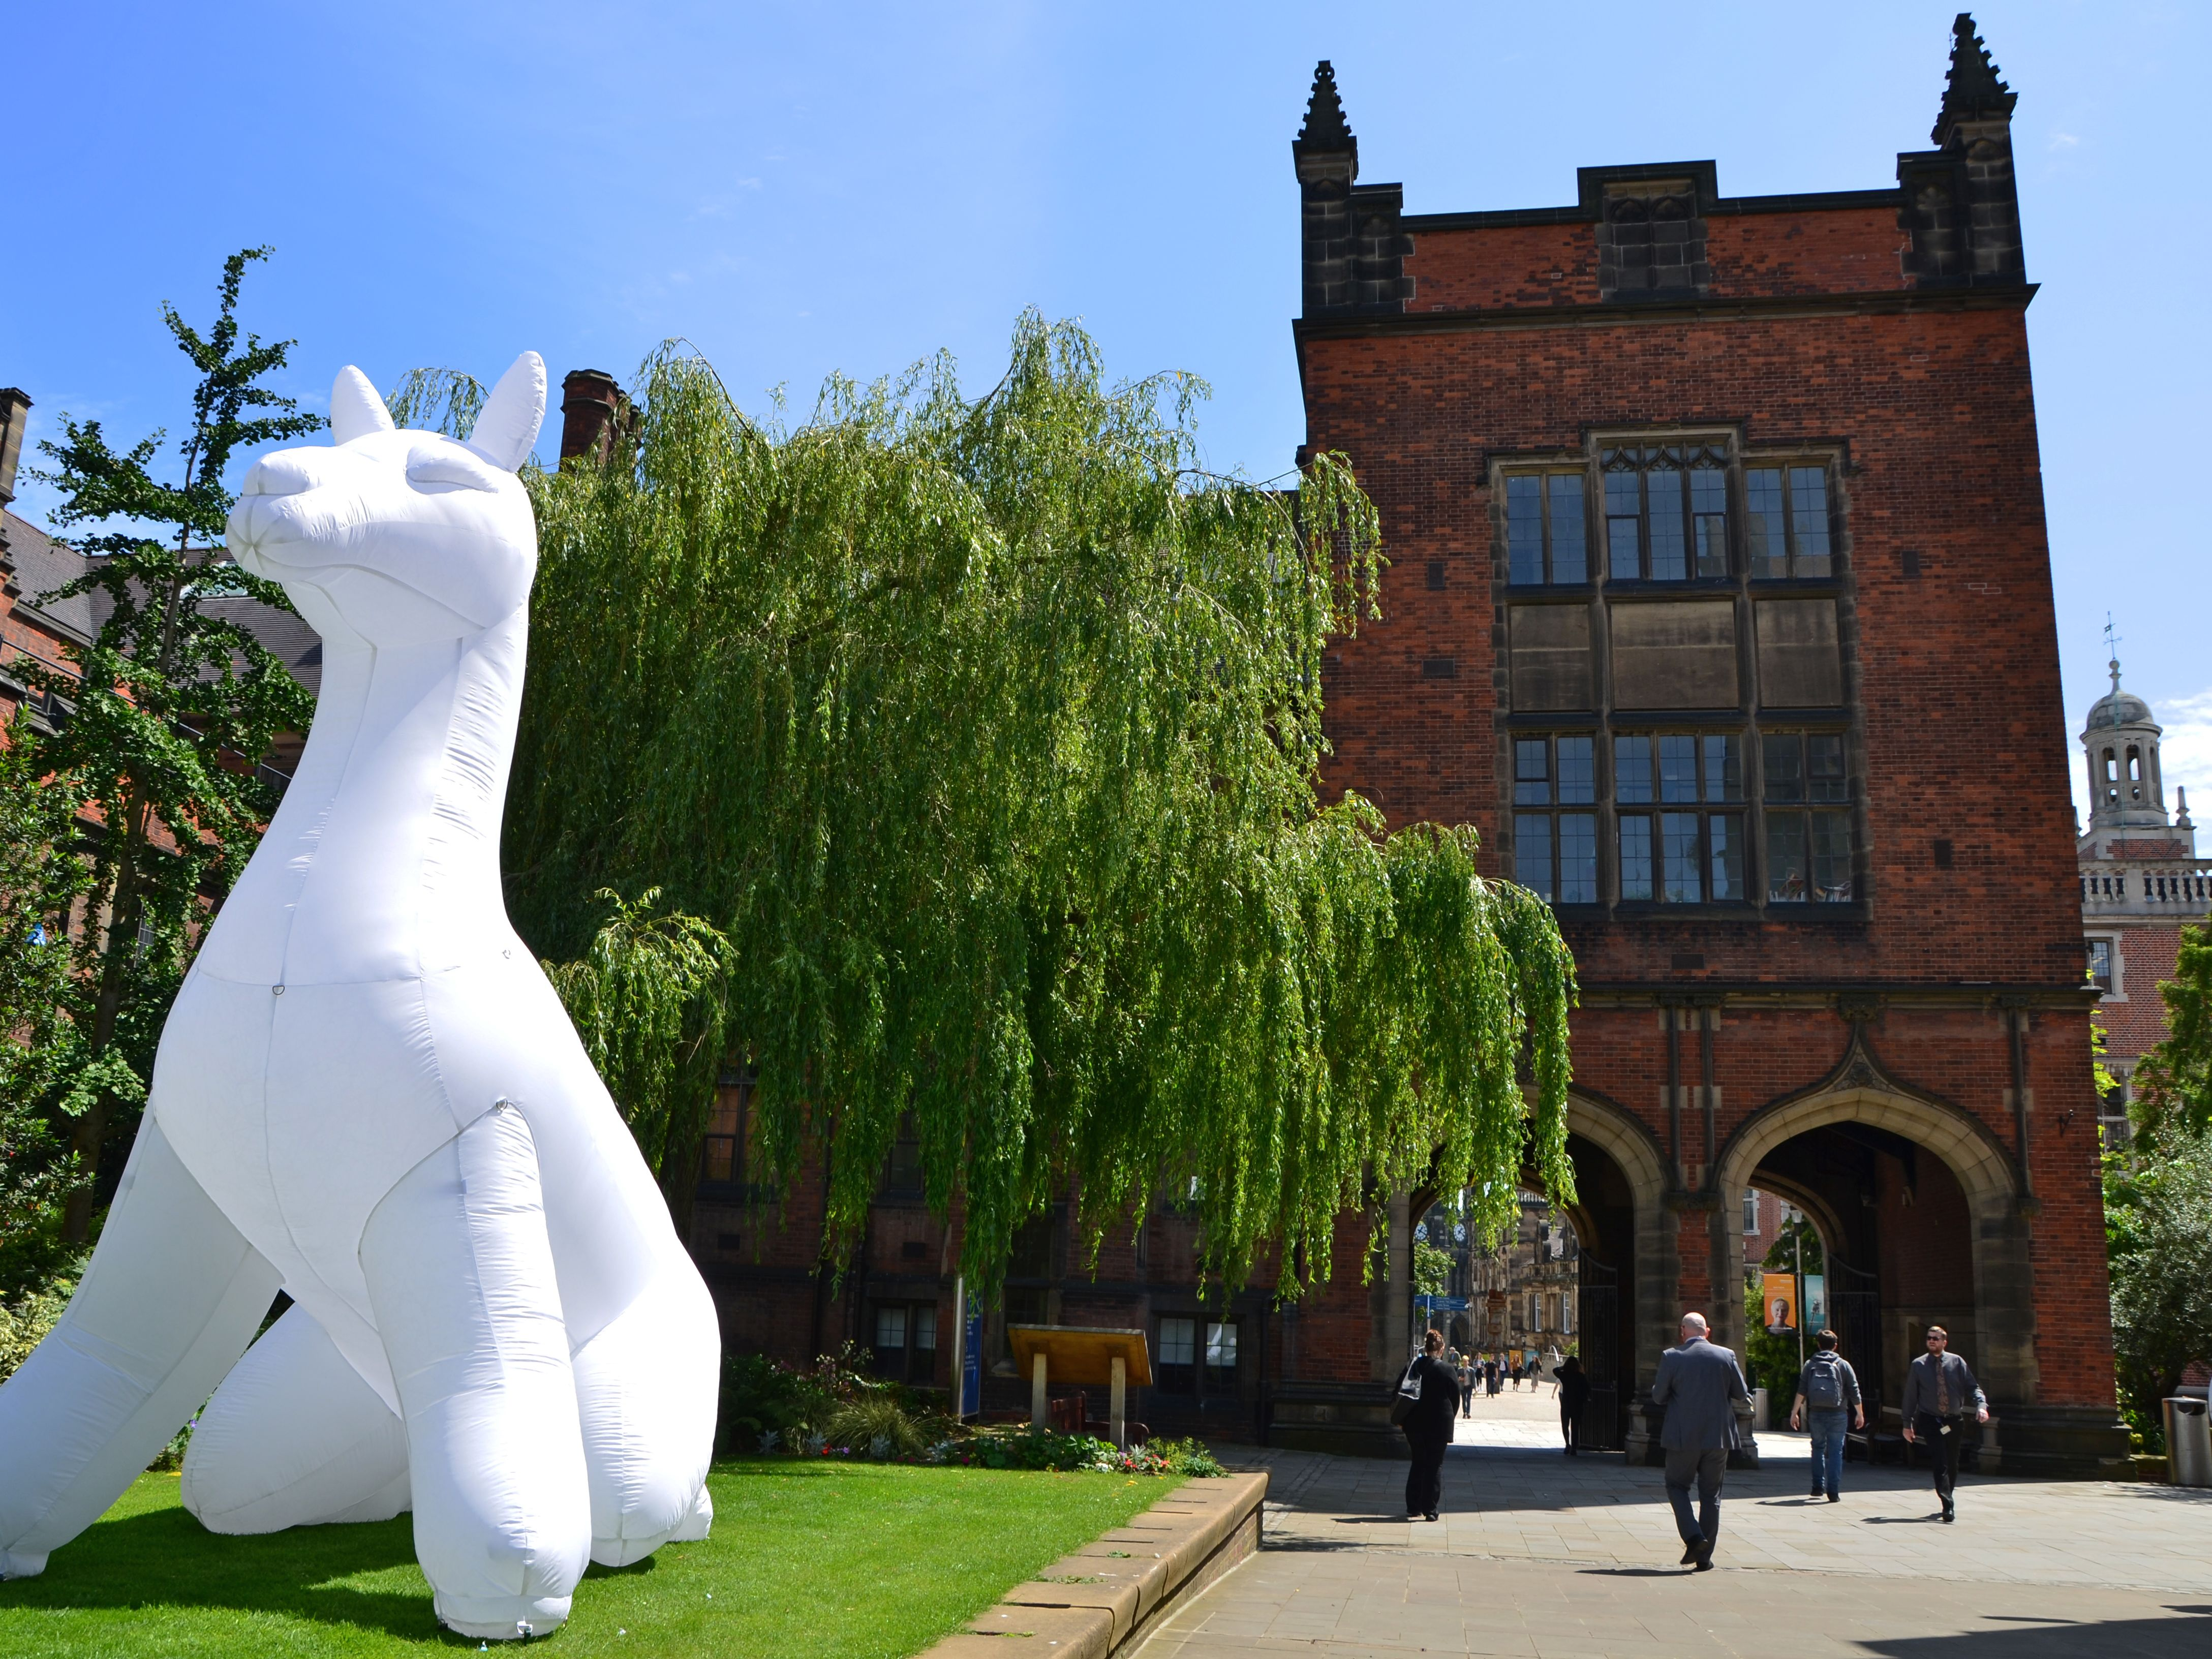 A large white inflatable on Newcastle University campus